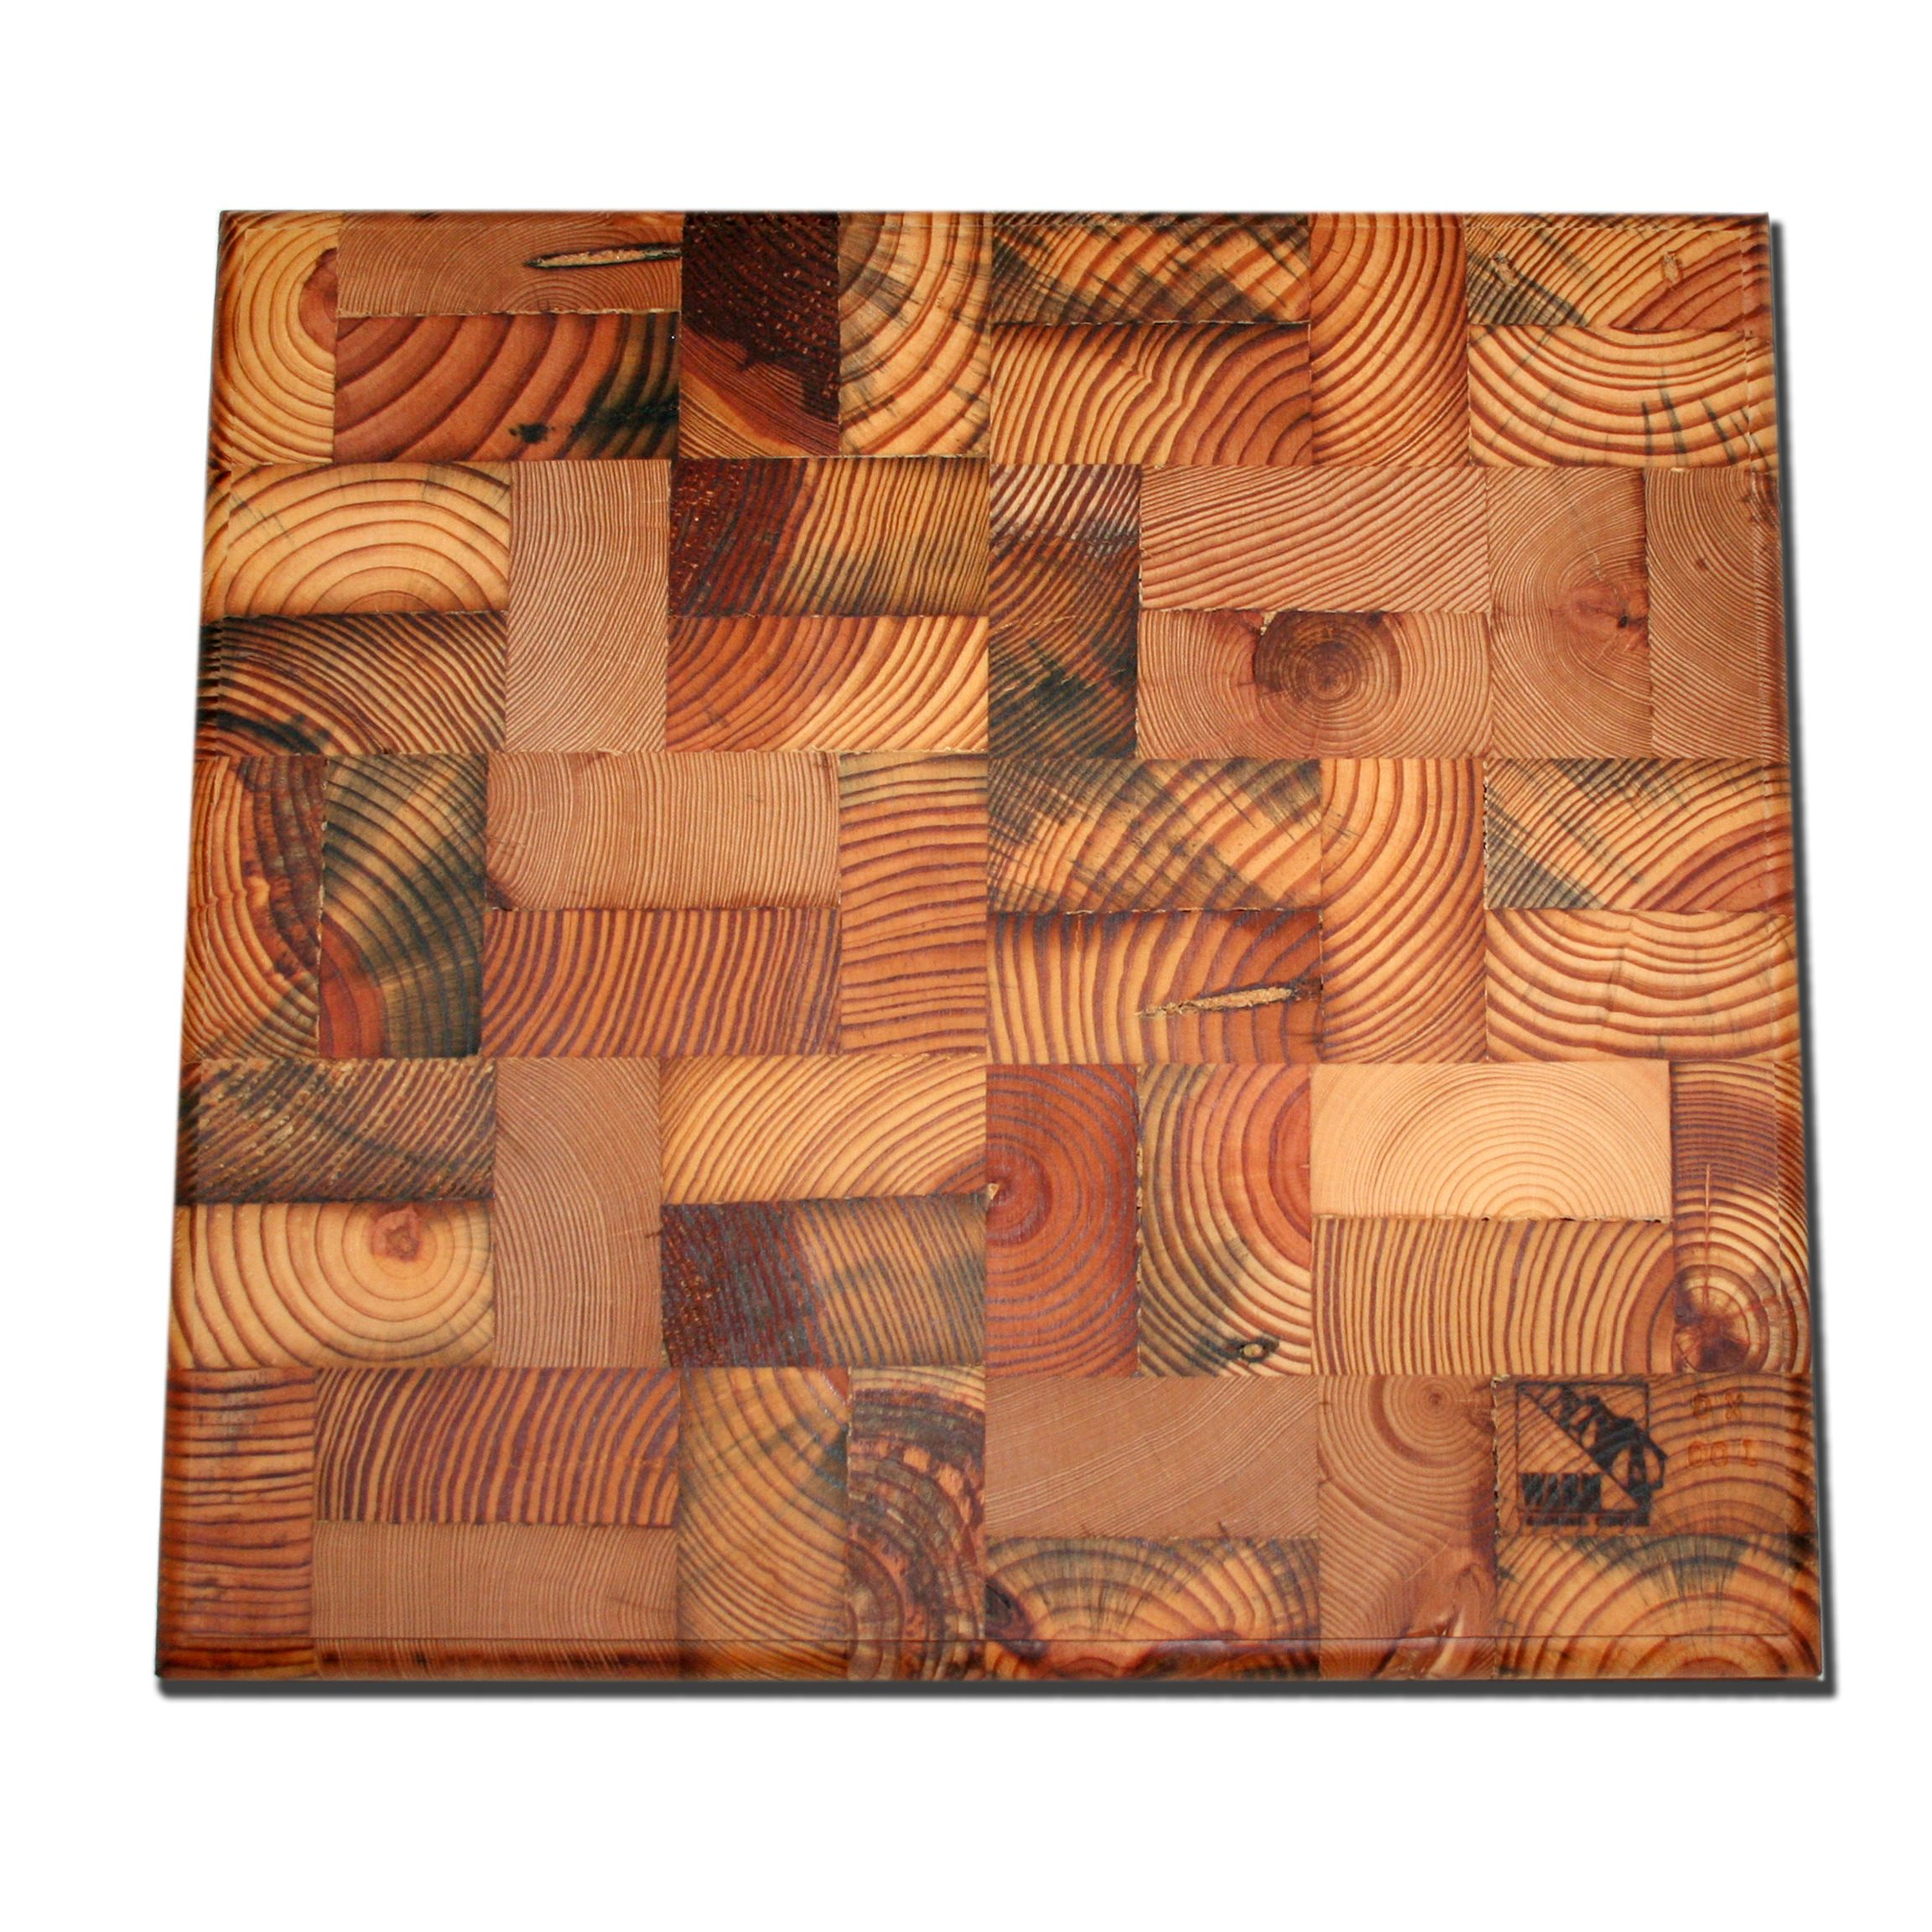 Wooden Wood Chopping Block Oil Pdf Plans John Boos Small Maple Cutting Boards With Bun Feet Quot Amp Squares